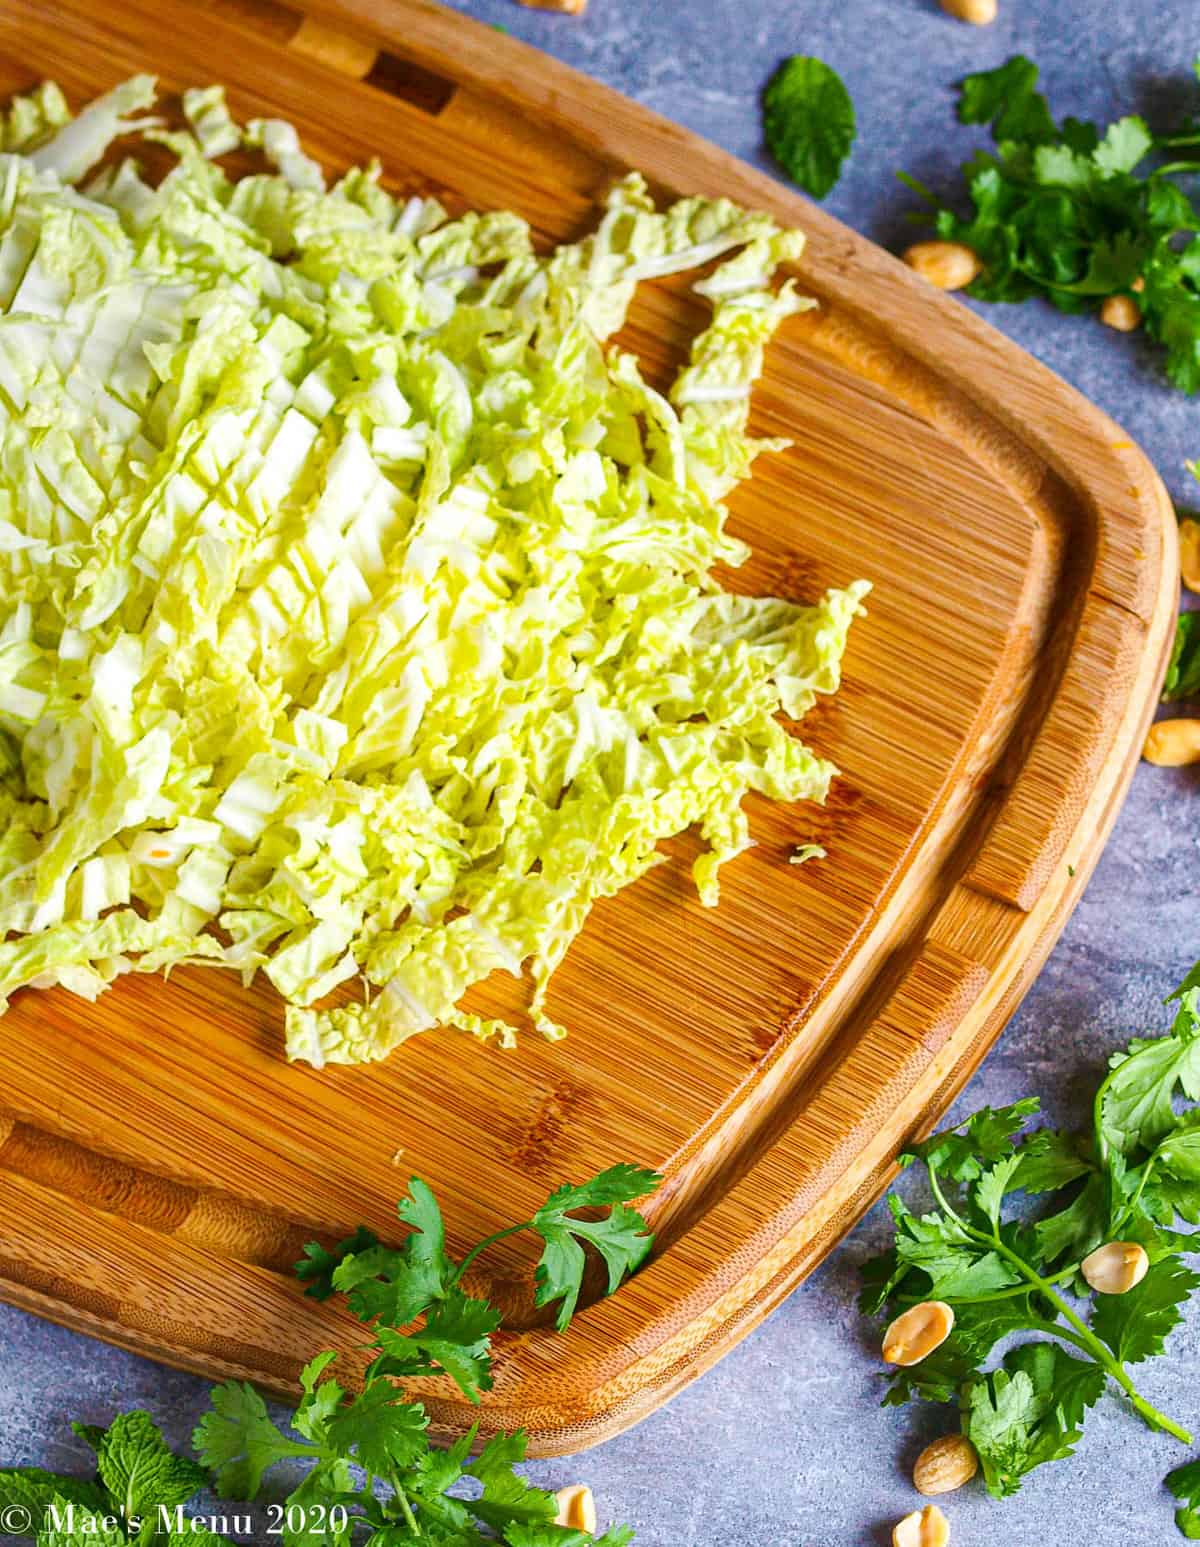 An overhead shot of half of head of napa cabbage sliced on a wooden cutting board with herbs and peanuts around the chopping board